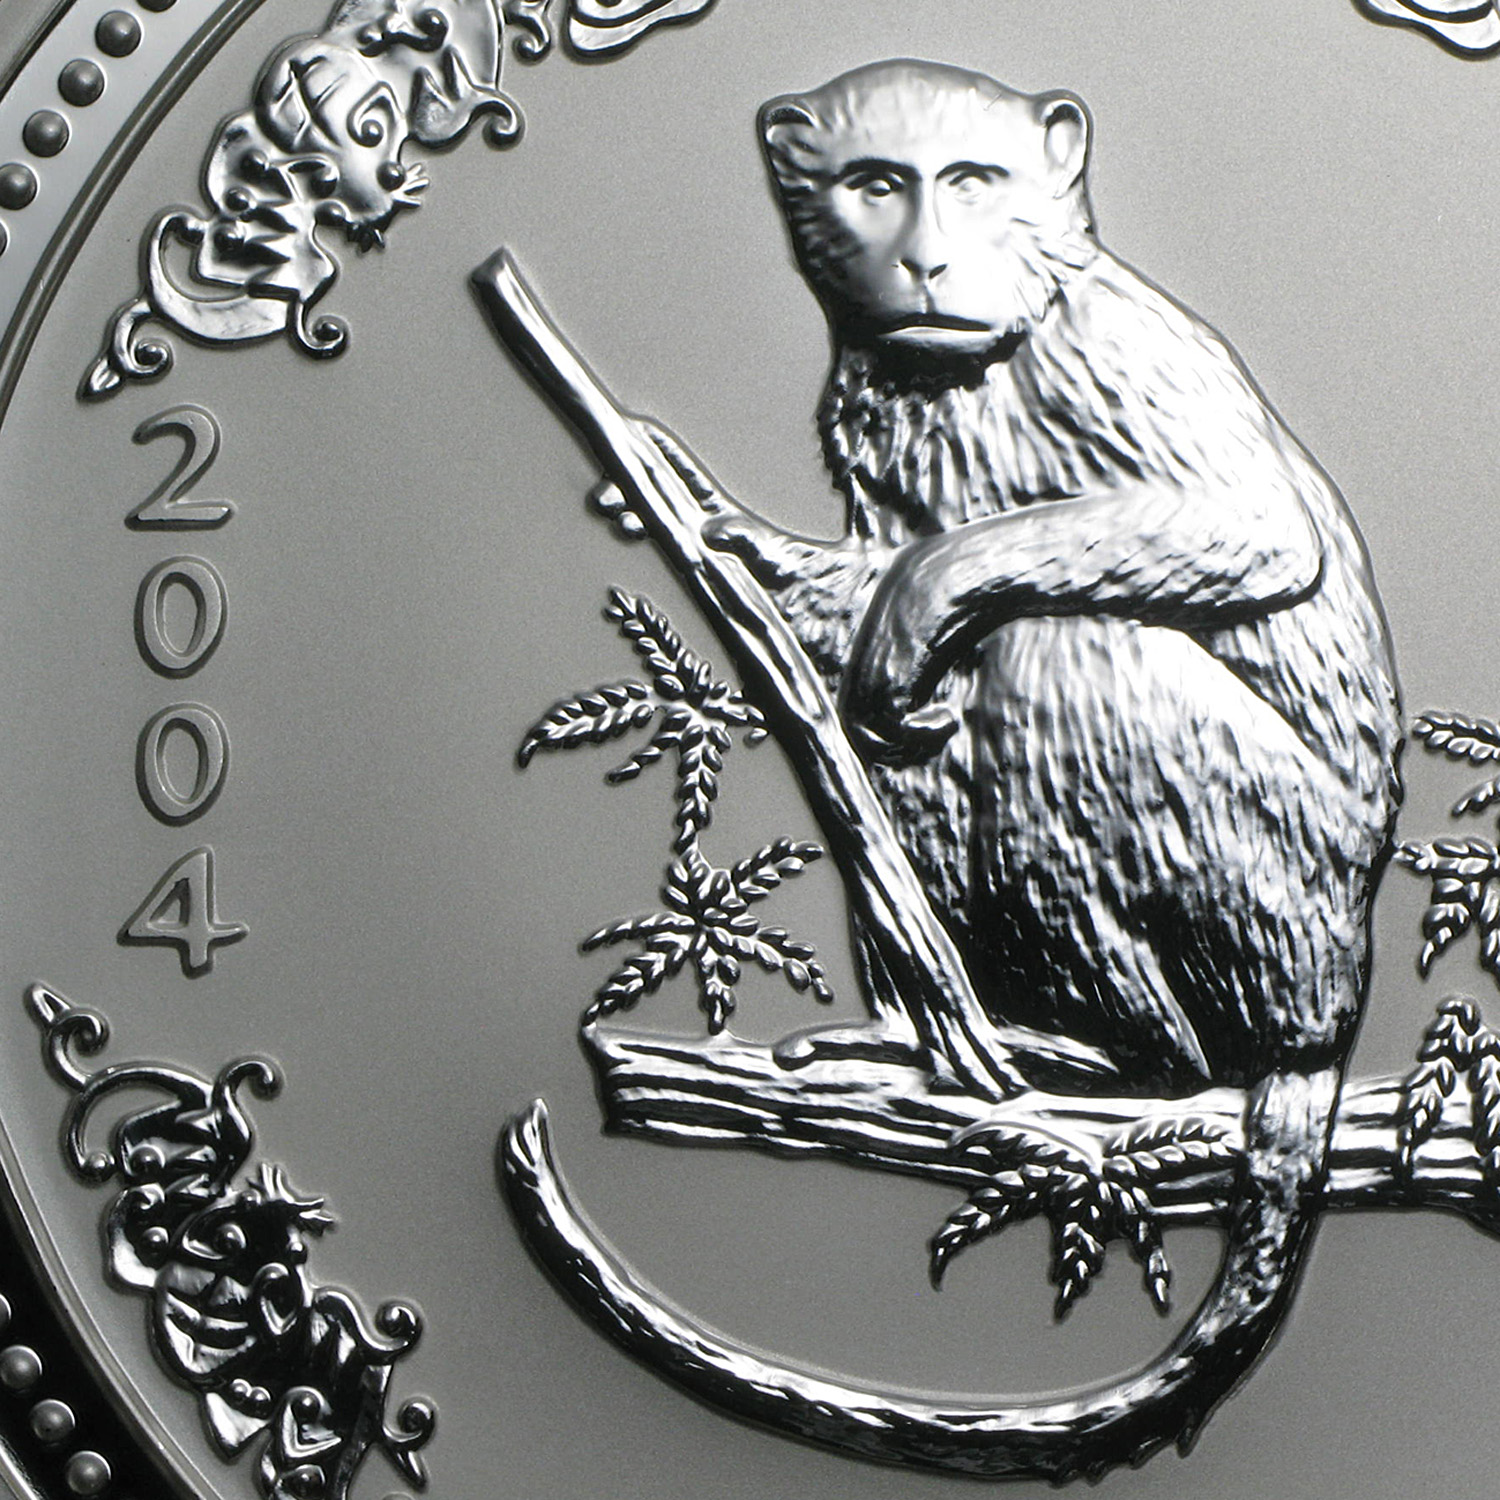 2004 1 Kilo Silver Australian Year of the Monkey BU